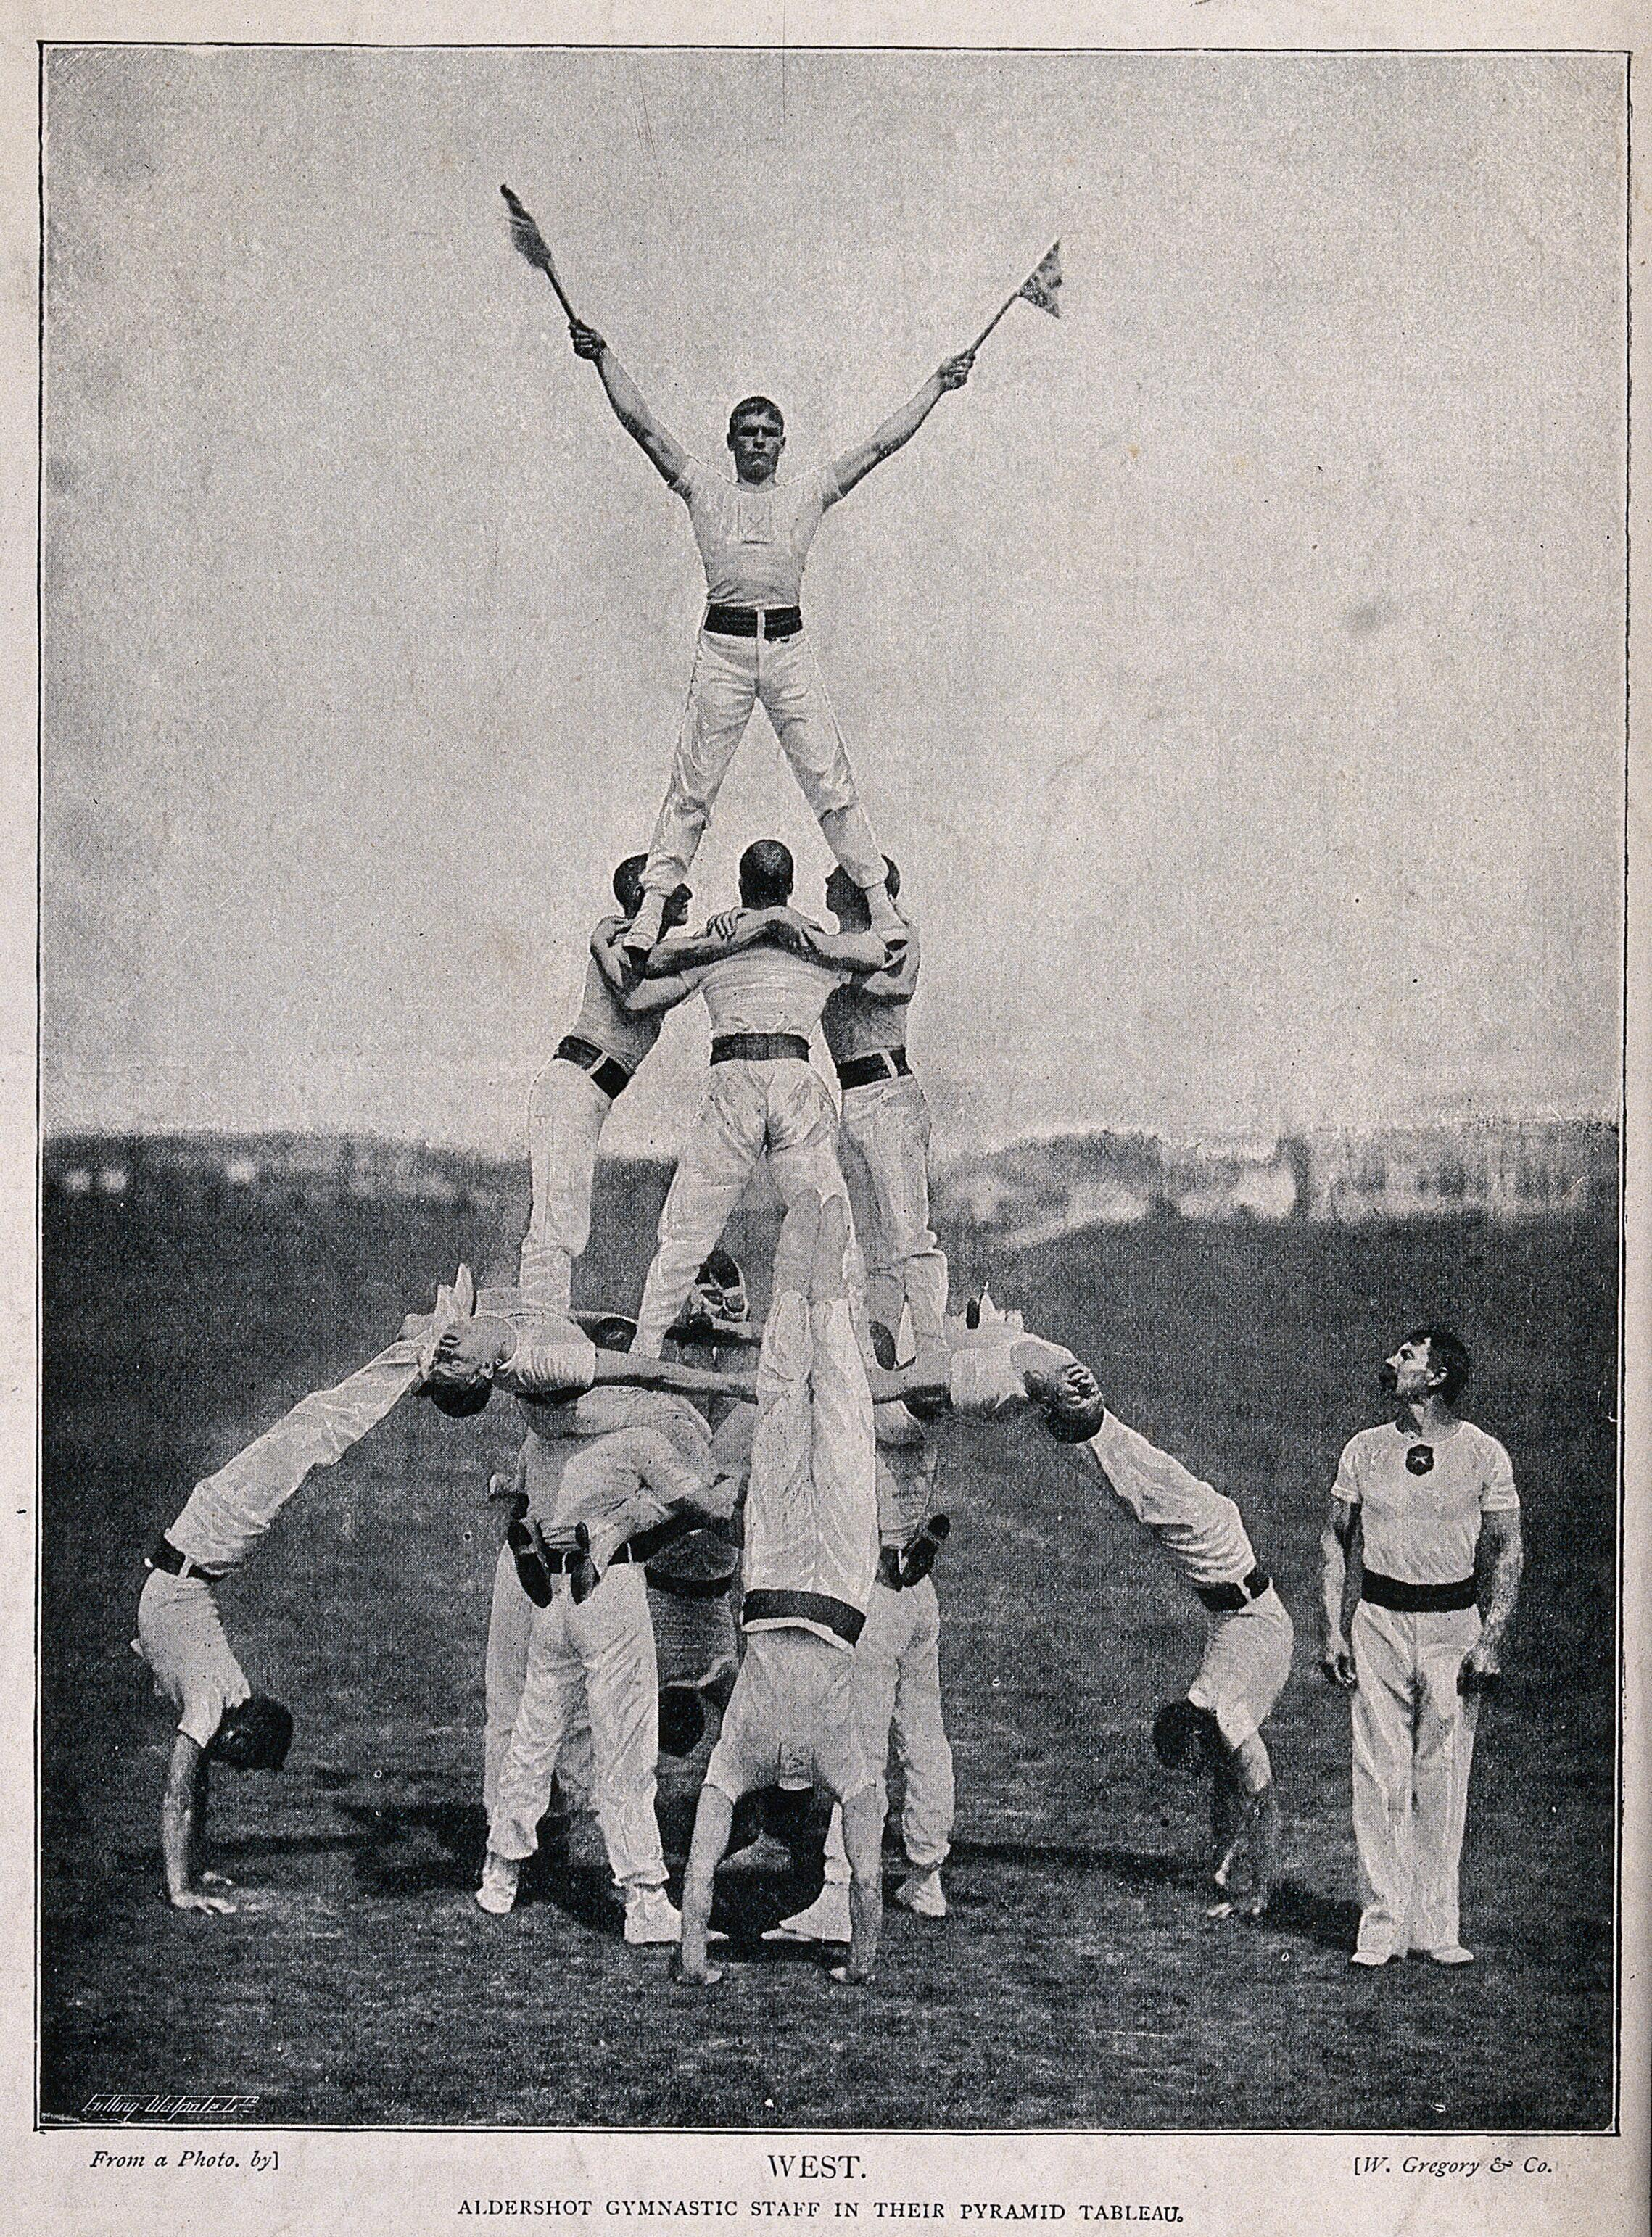 A number of men have formed a pyramid as part of a gymnastic